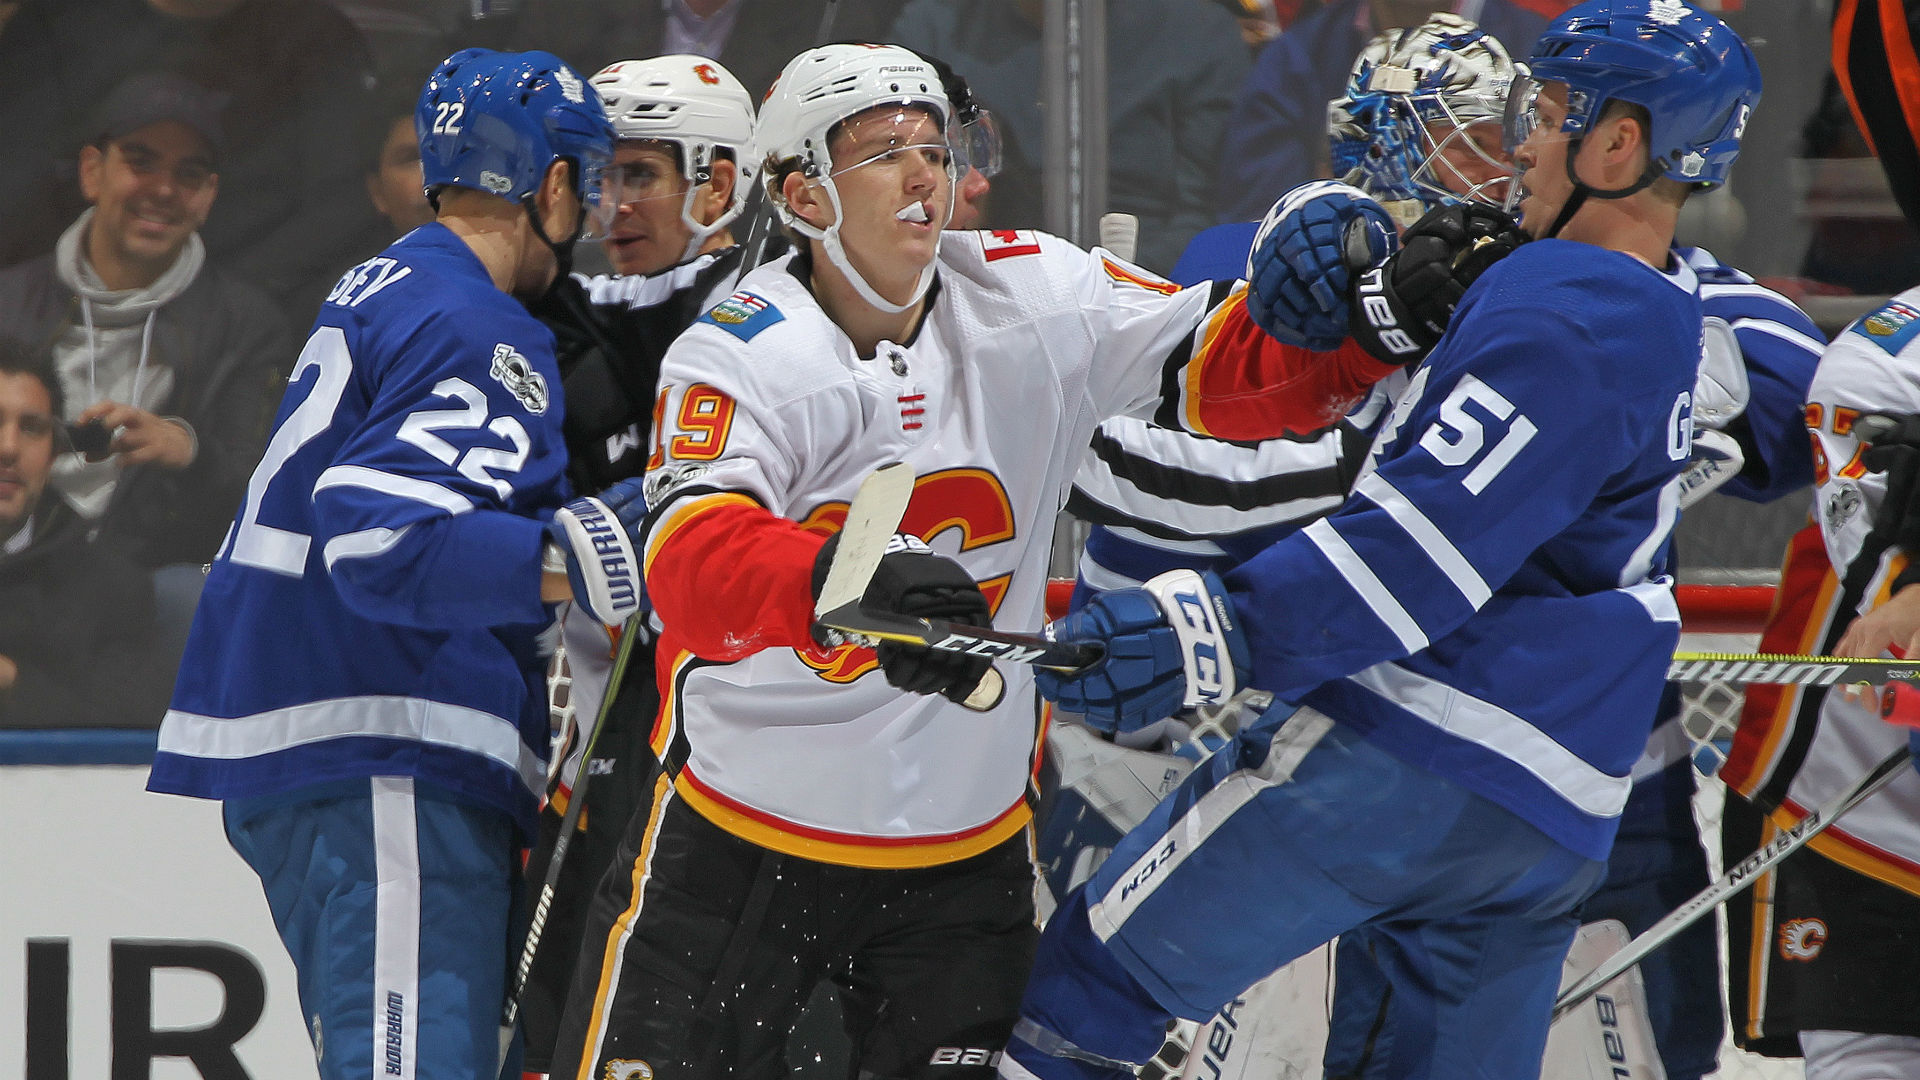 Maple Leafs react to Matthew Tkachuk spear: 'It's child's play'